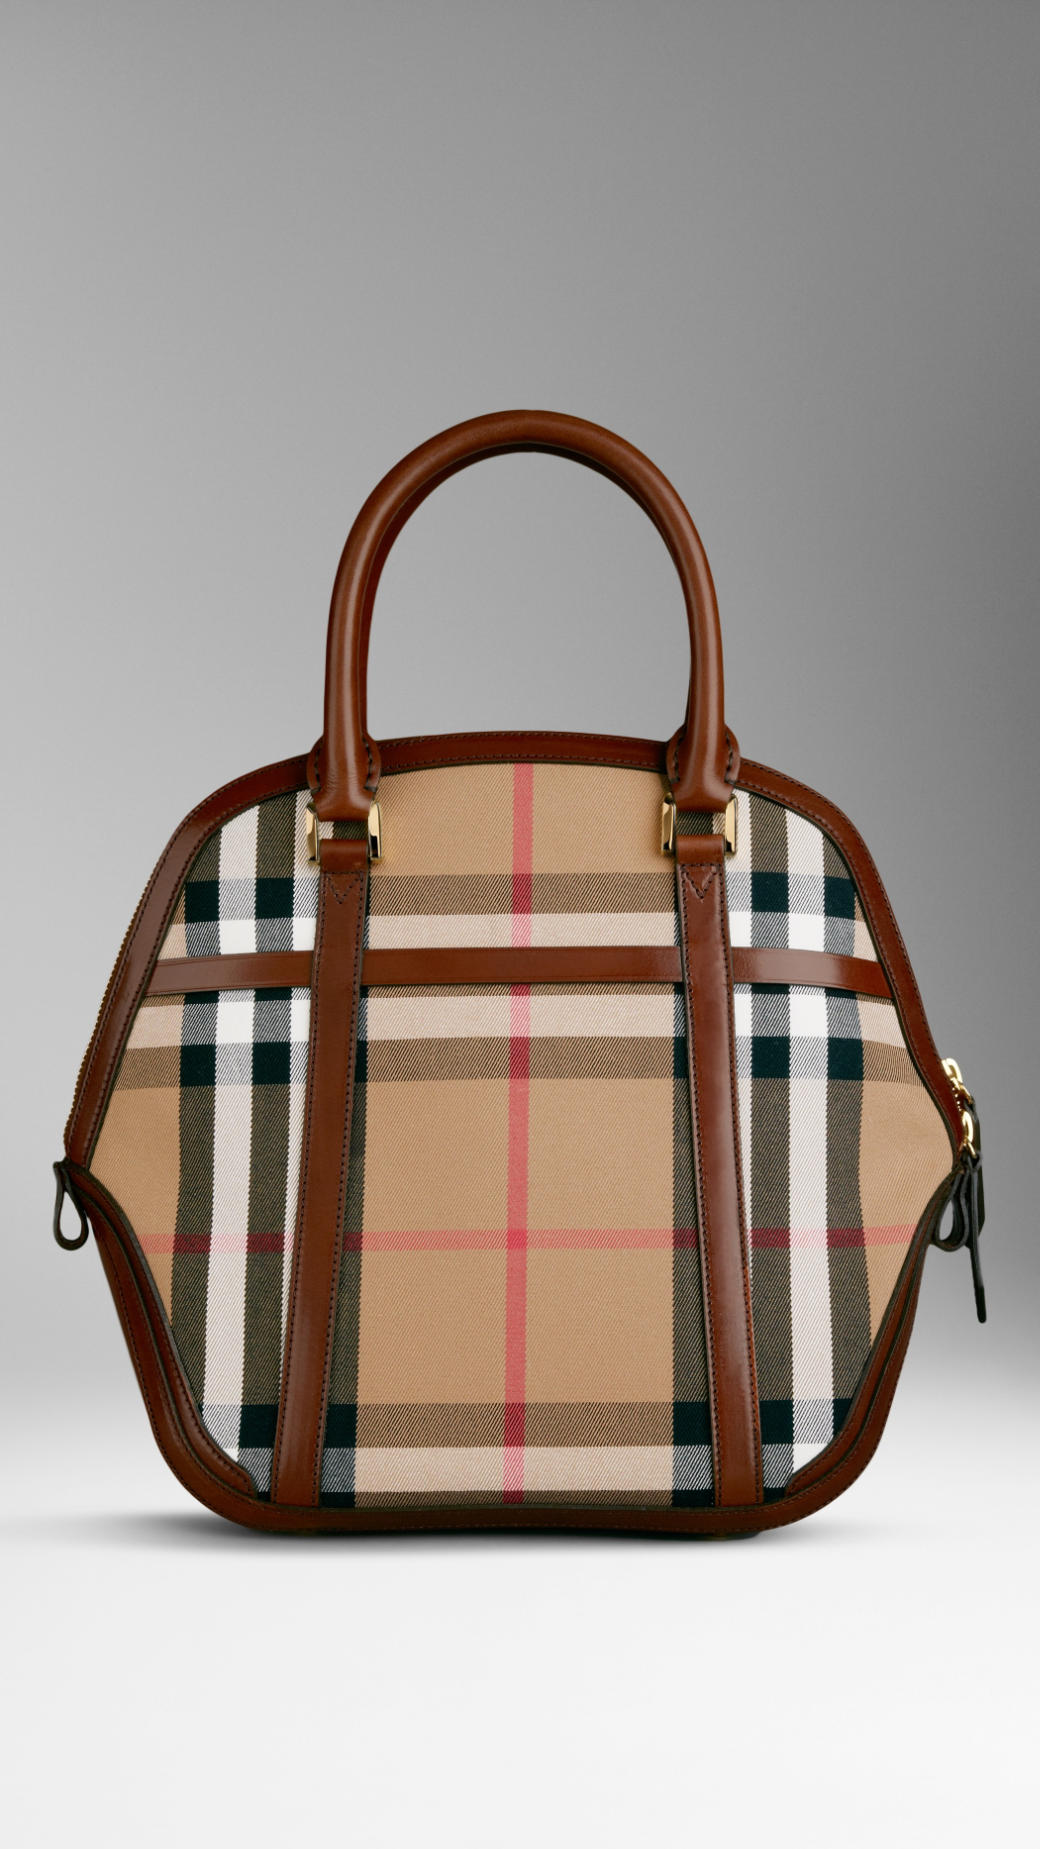 Sac Burberry en house check